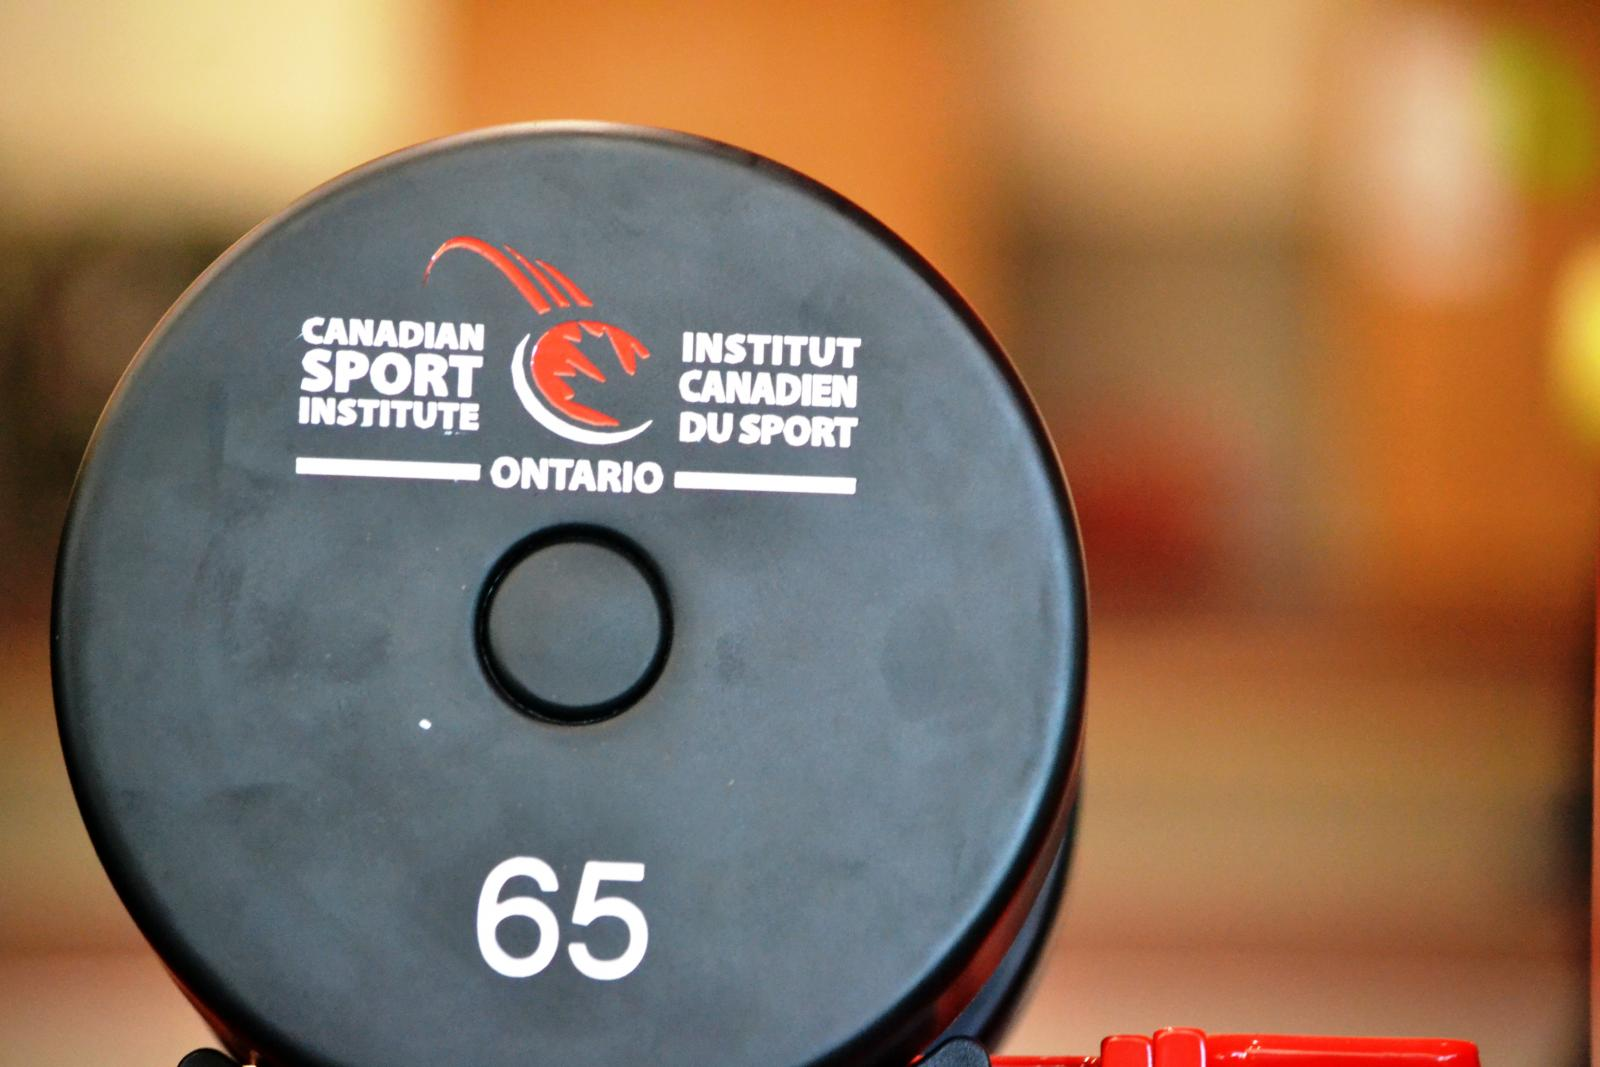 Weight with CSIO logo on it.